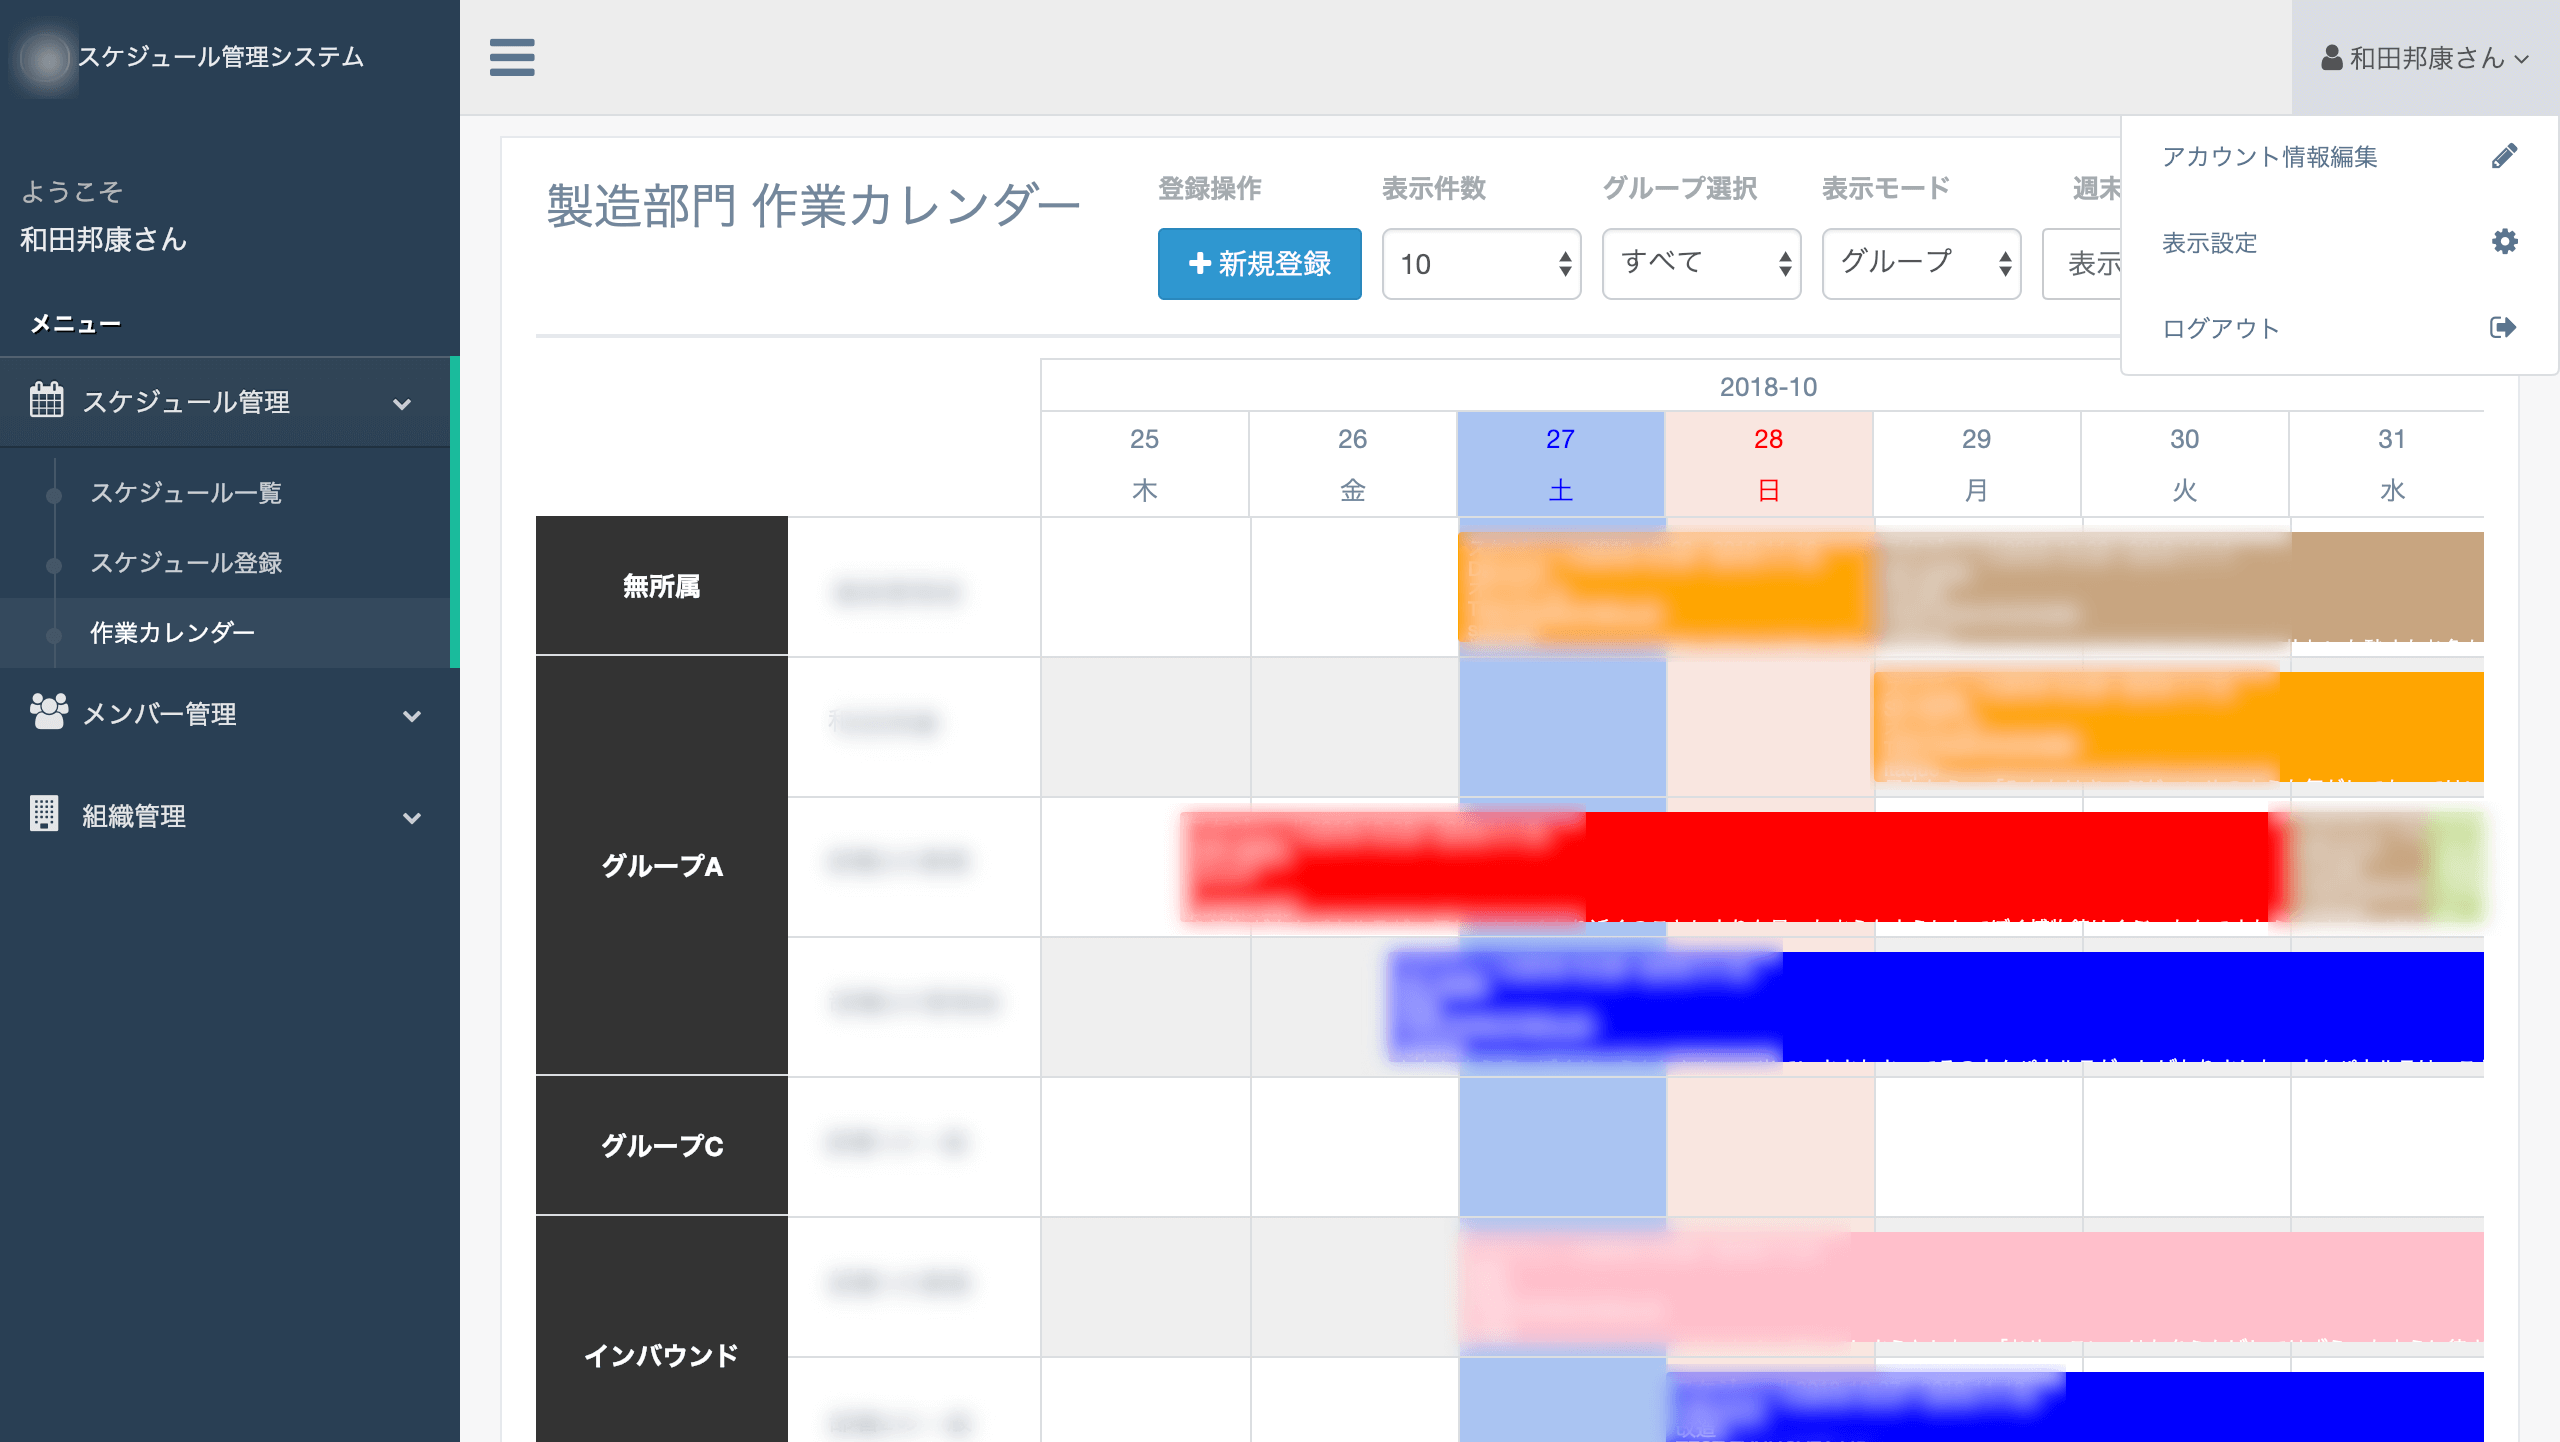 Employee schedule/process management system created by MikuniLabo